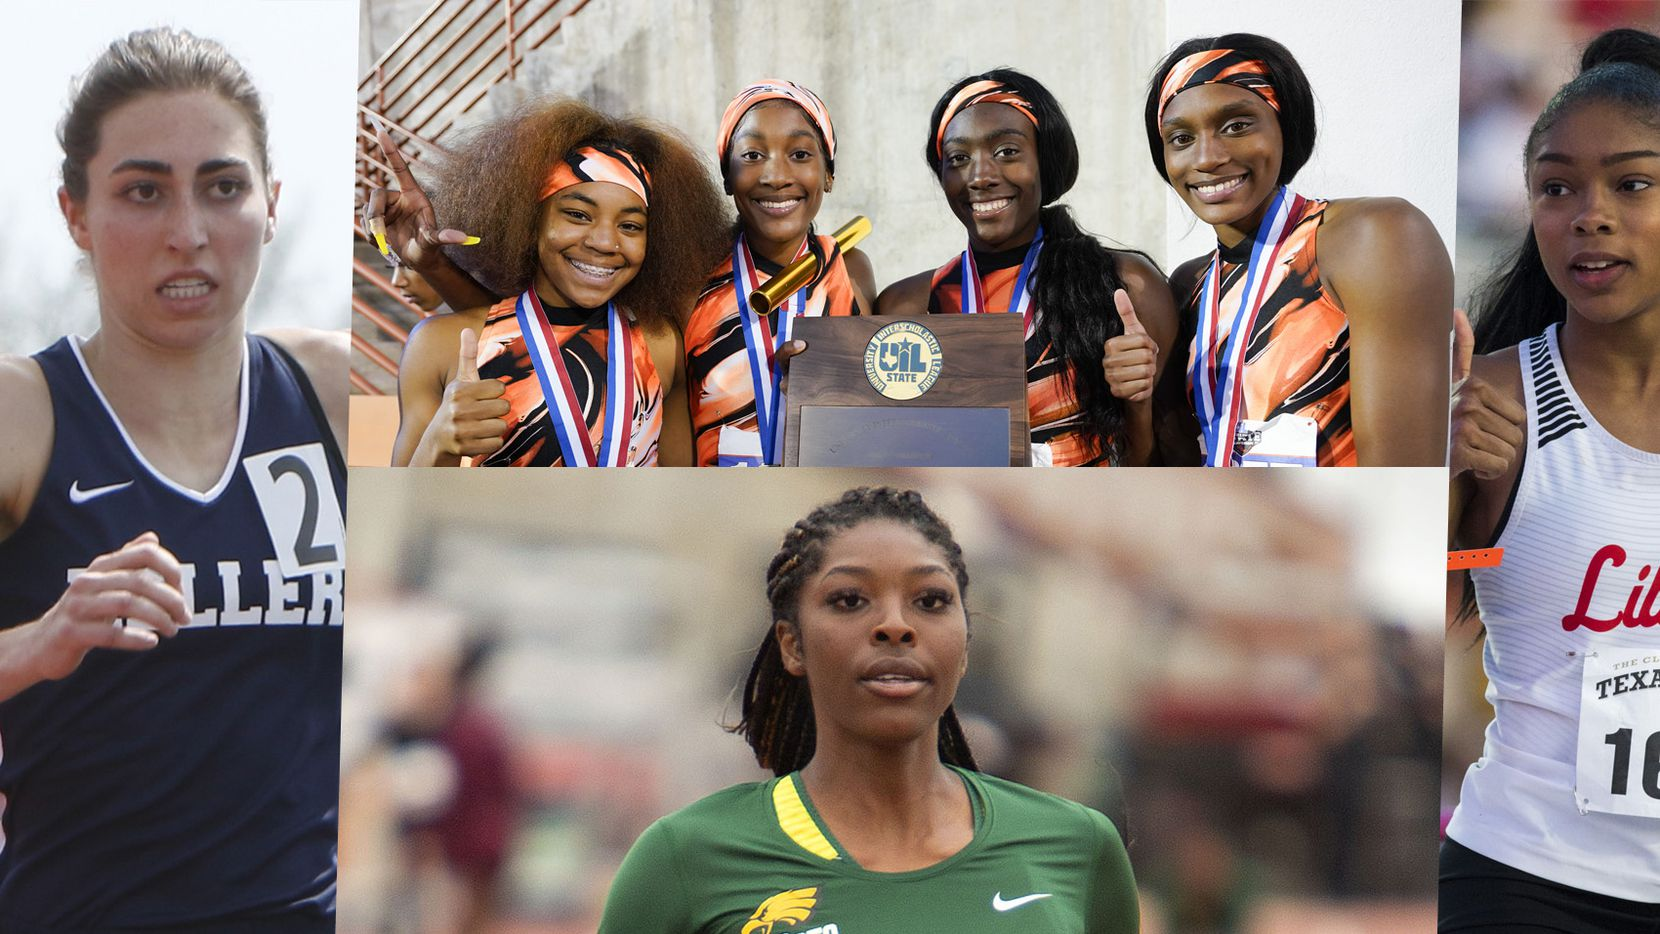 Far left: Keller's Isabel Van Camp. Top middle: Lancaster's 4x200 relay team -- Aysia Ward, Trelondra Strong, Cornesia Calhoun and Kiara Smith.Bottom middle: DeSoto's Rosaline Effiong.Far right: Frisco LIberty's Nissi Kabongo.